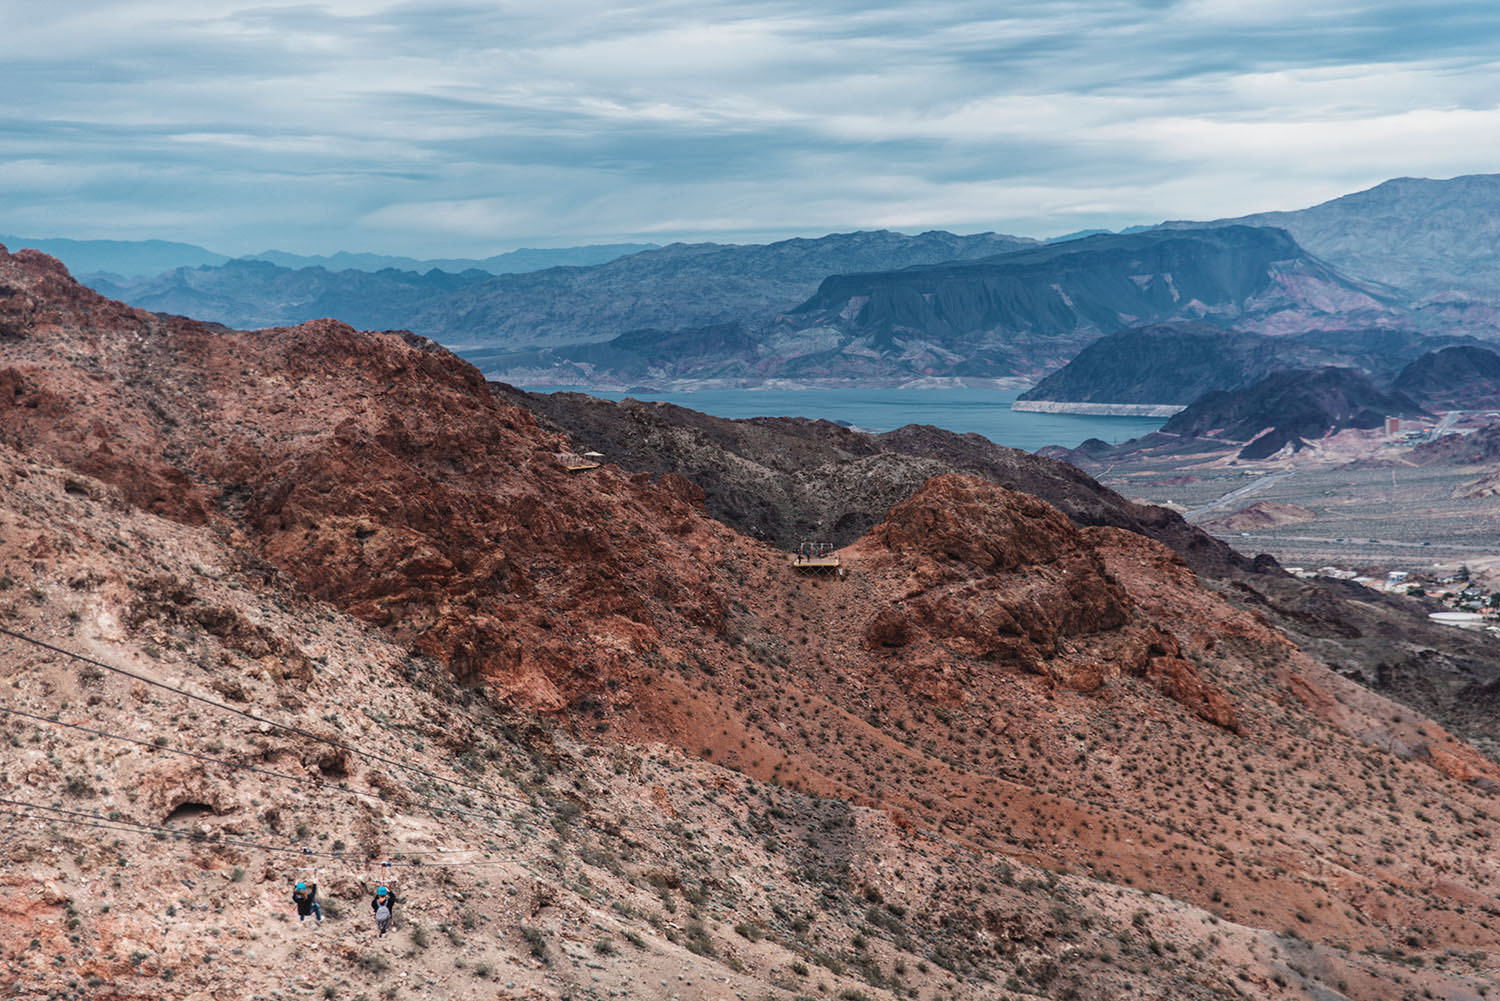 View of Bootleg Canyon and Lake Mead in Nevada